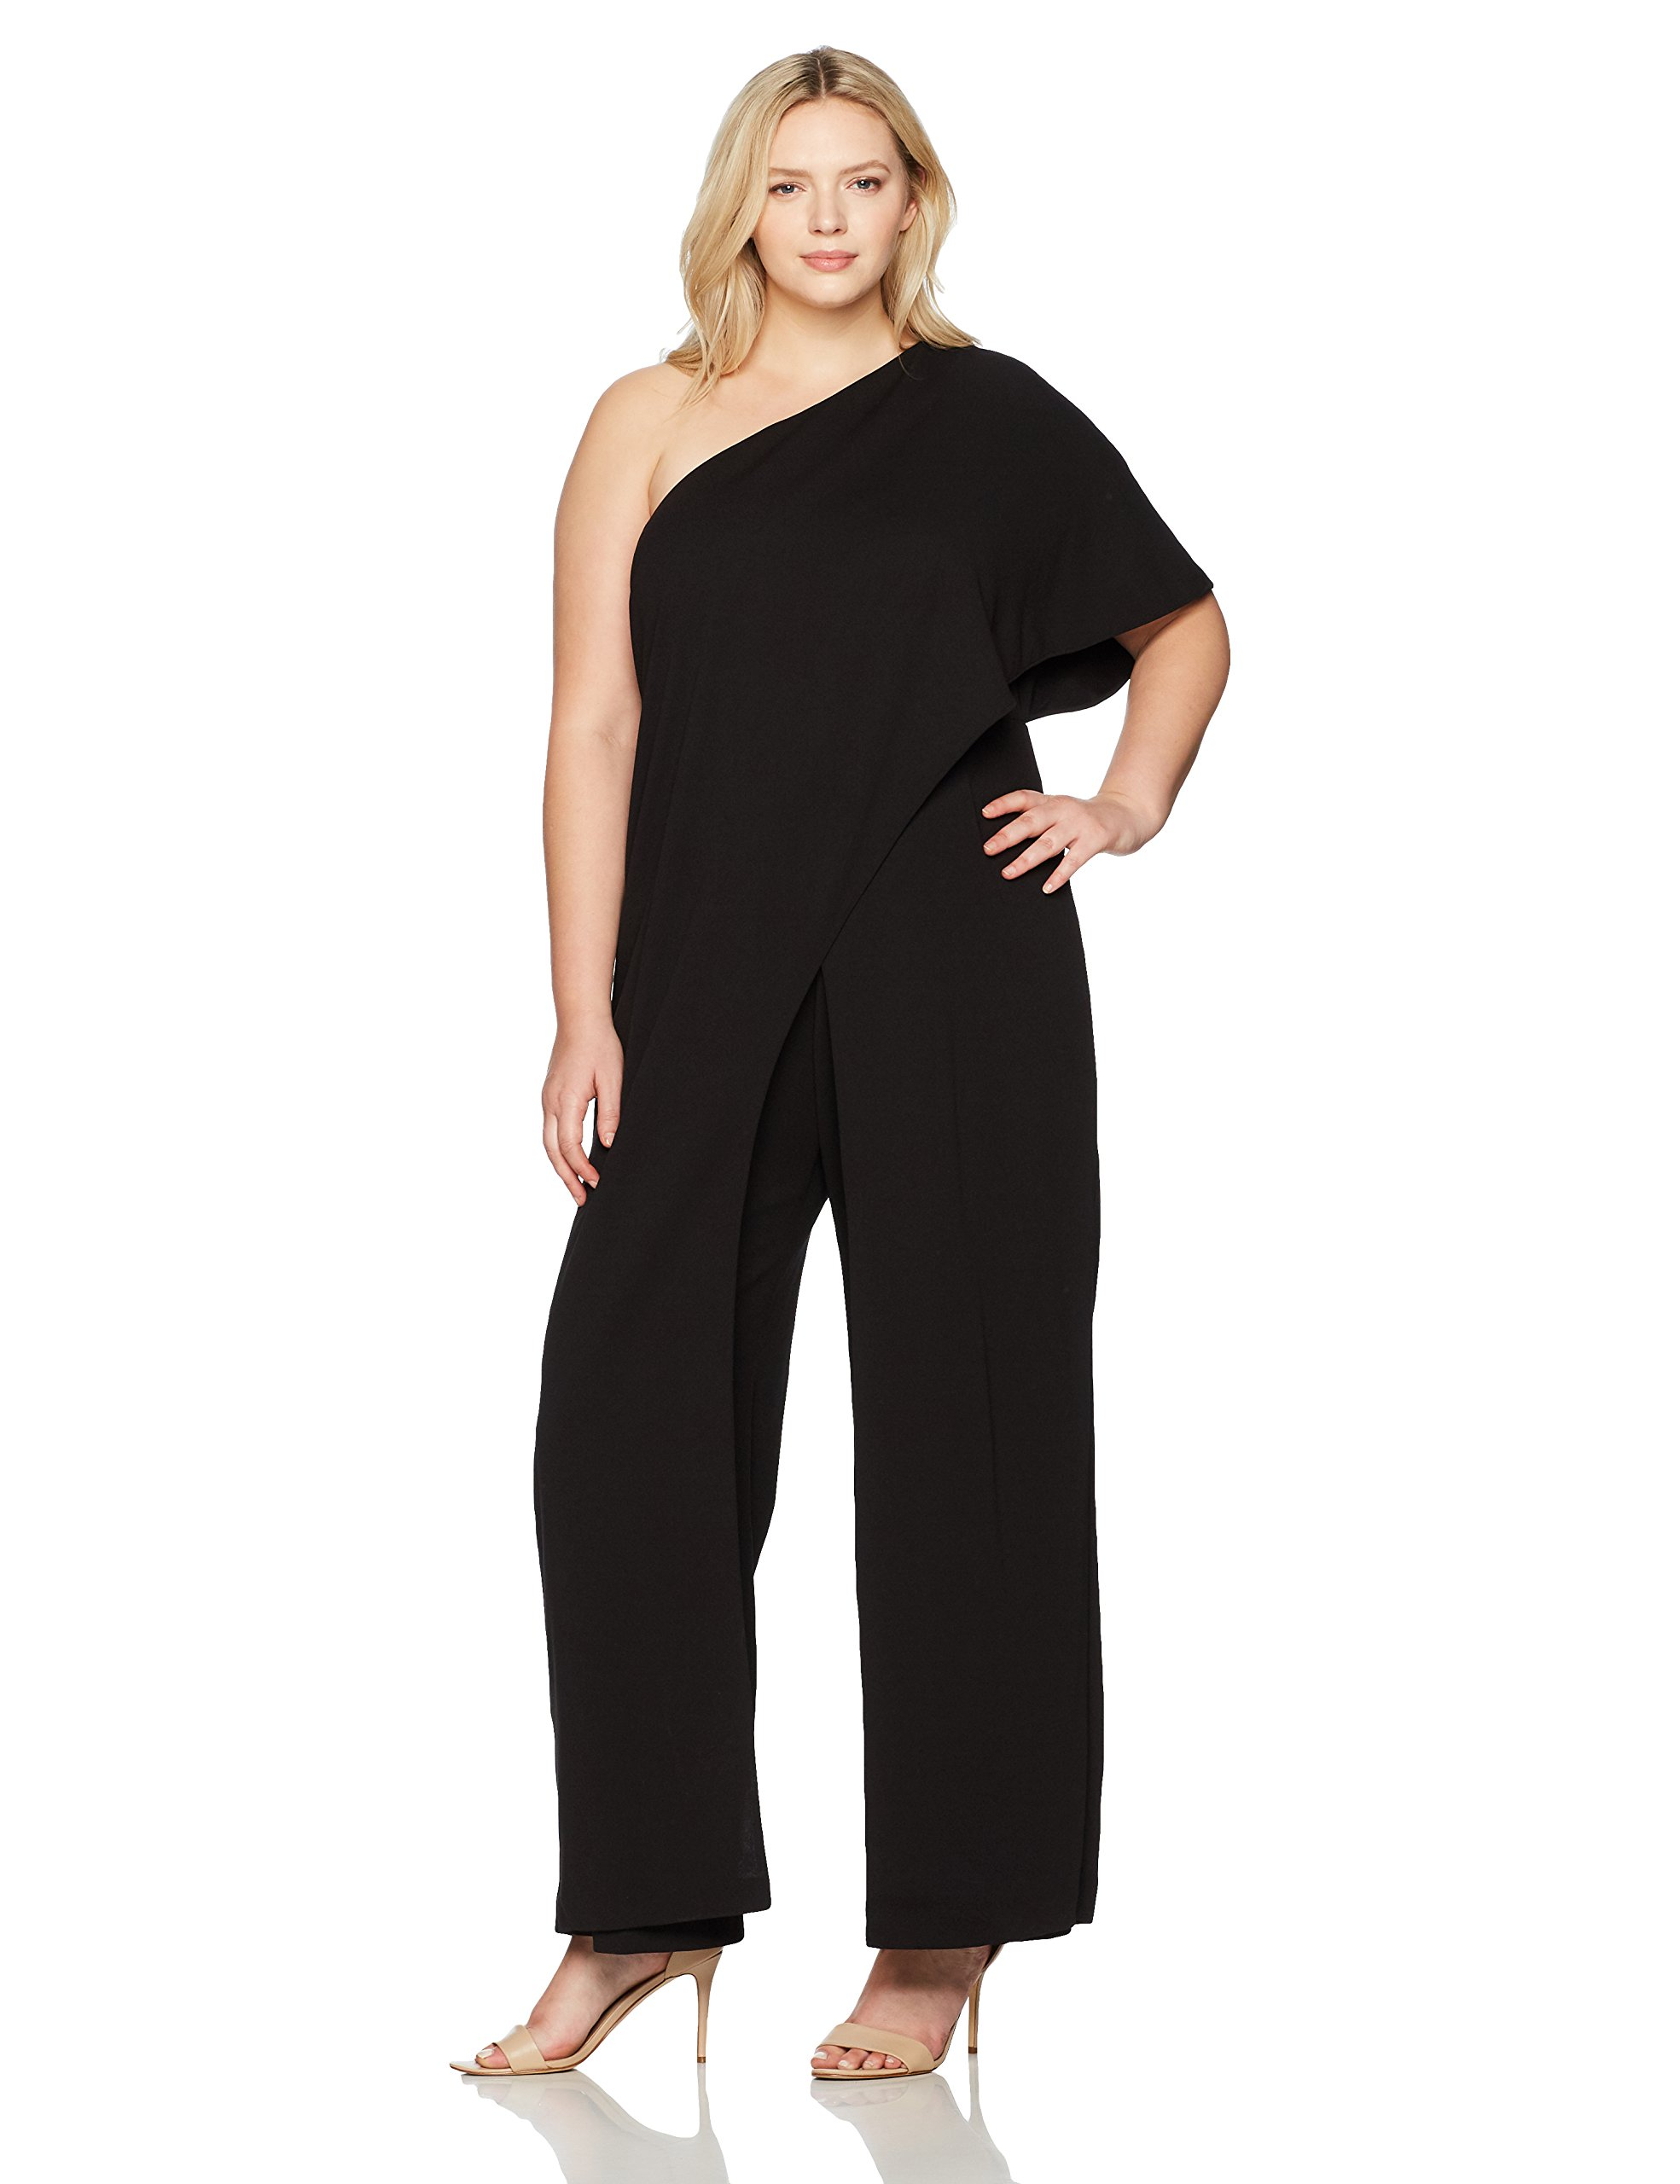 Adrianna Papell Women's Plus Size One Shoulder Crepe Melania Jumpsuit, Black, 16W by Adrianna Papell